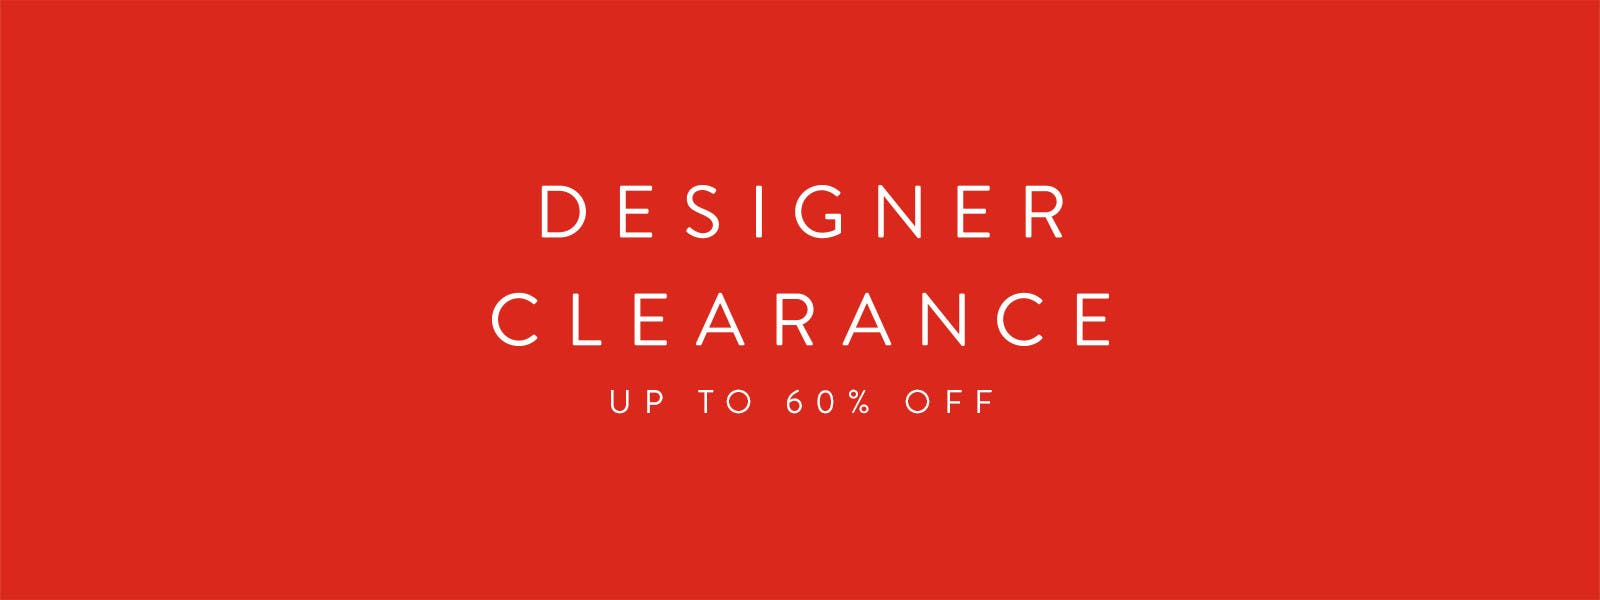 Designer Clearance Sale. Up to 60% off.